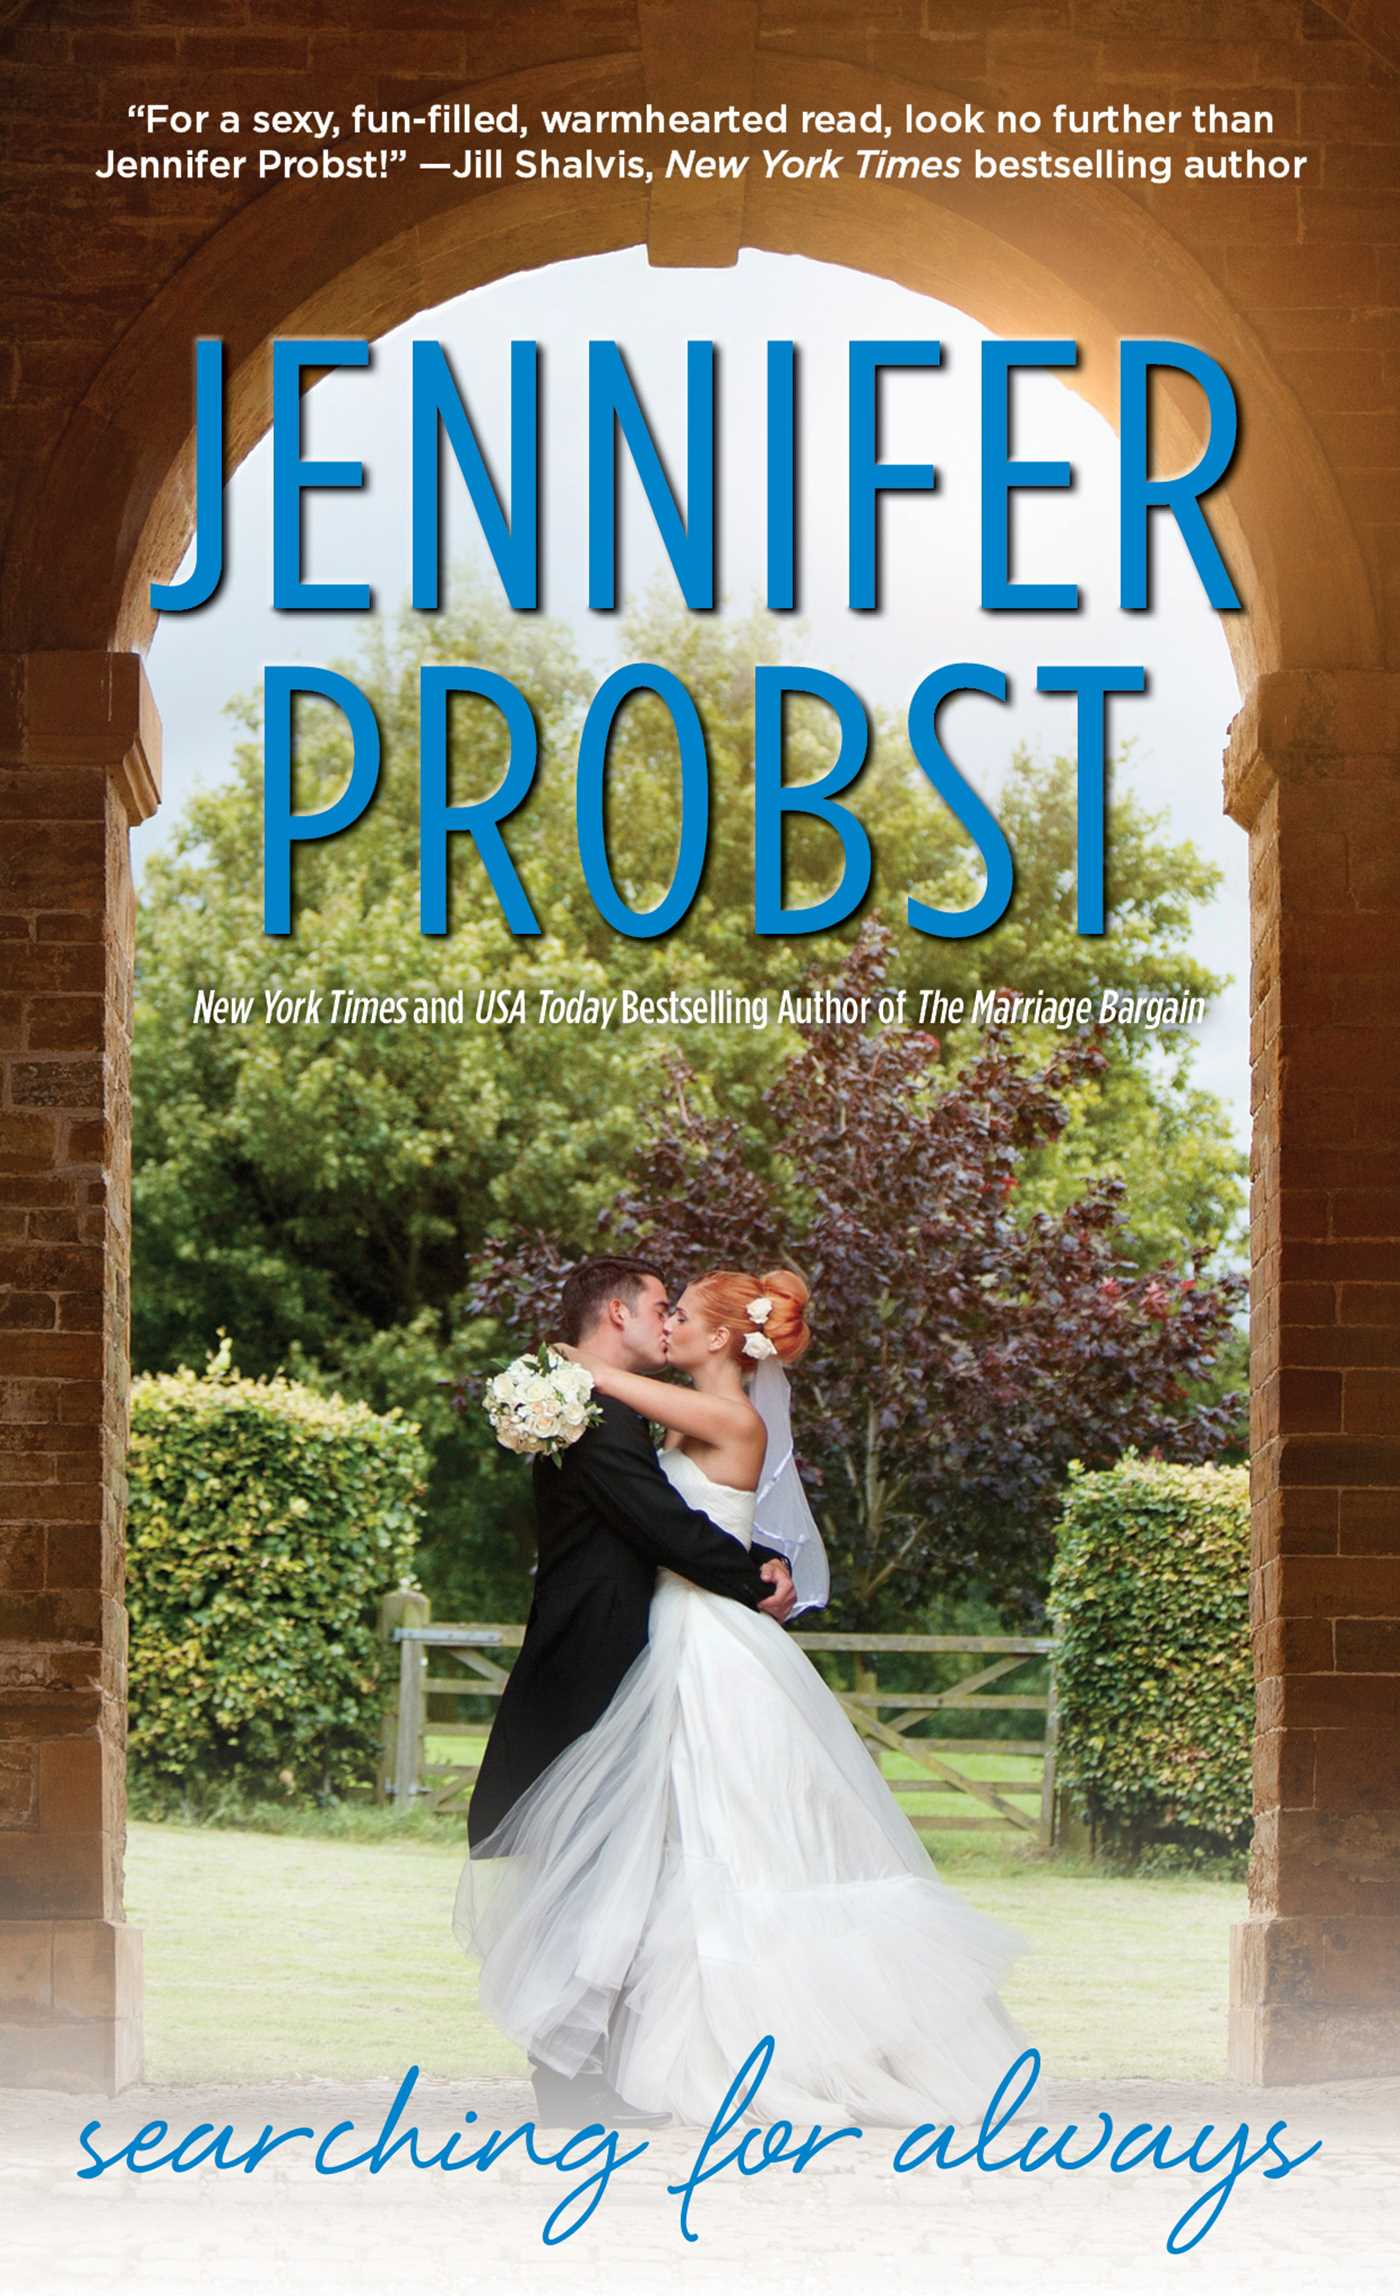 Jennifer probst official publisher page simon schuster uk book cover image jpg searching for always fandeluxe Images